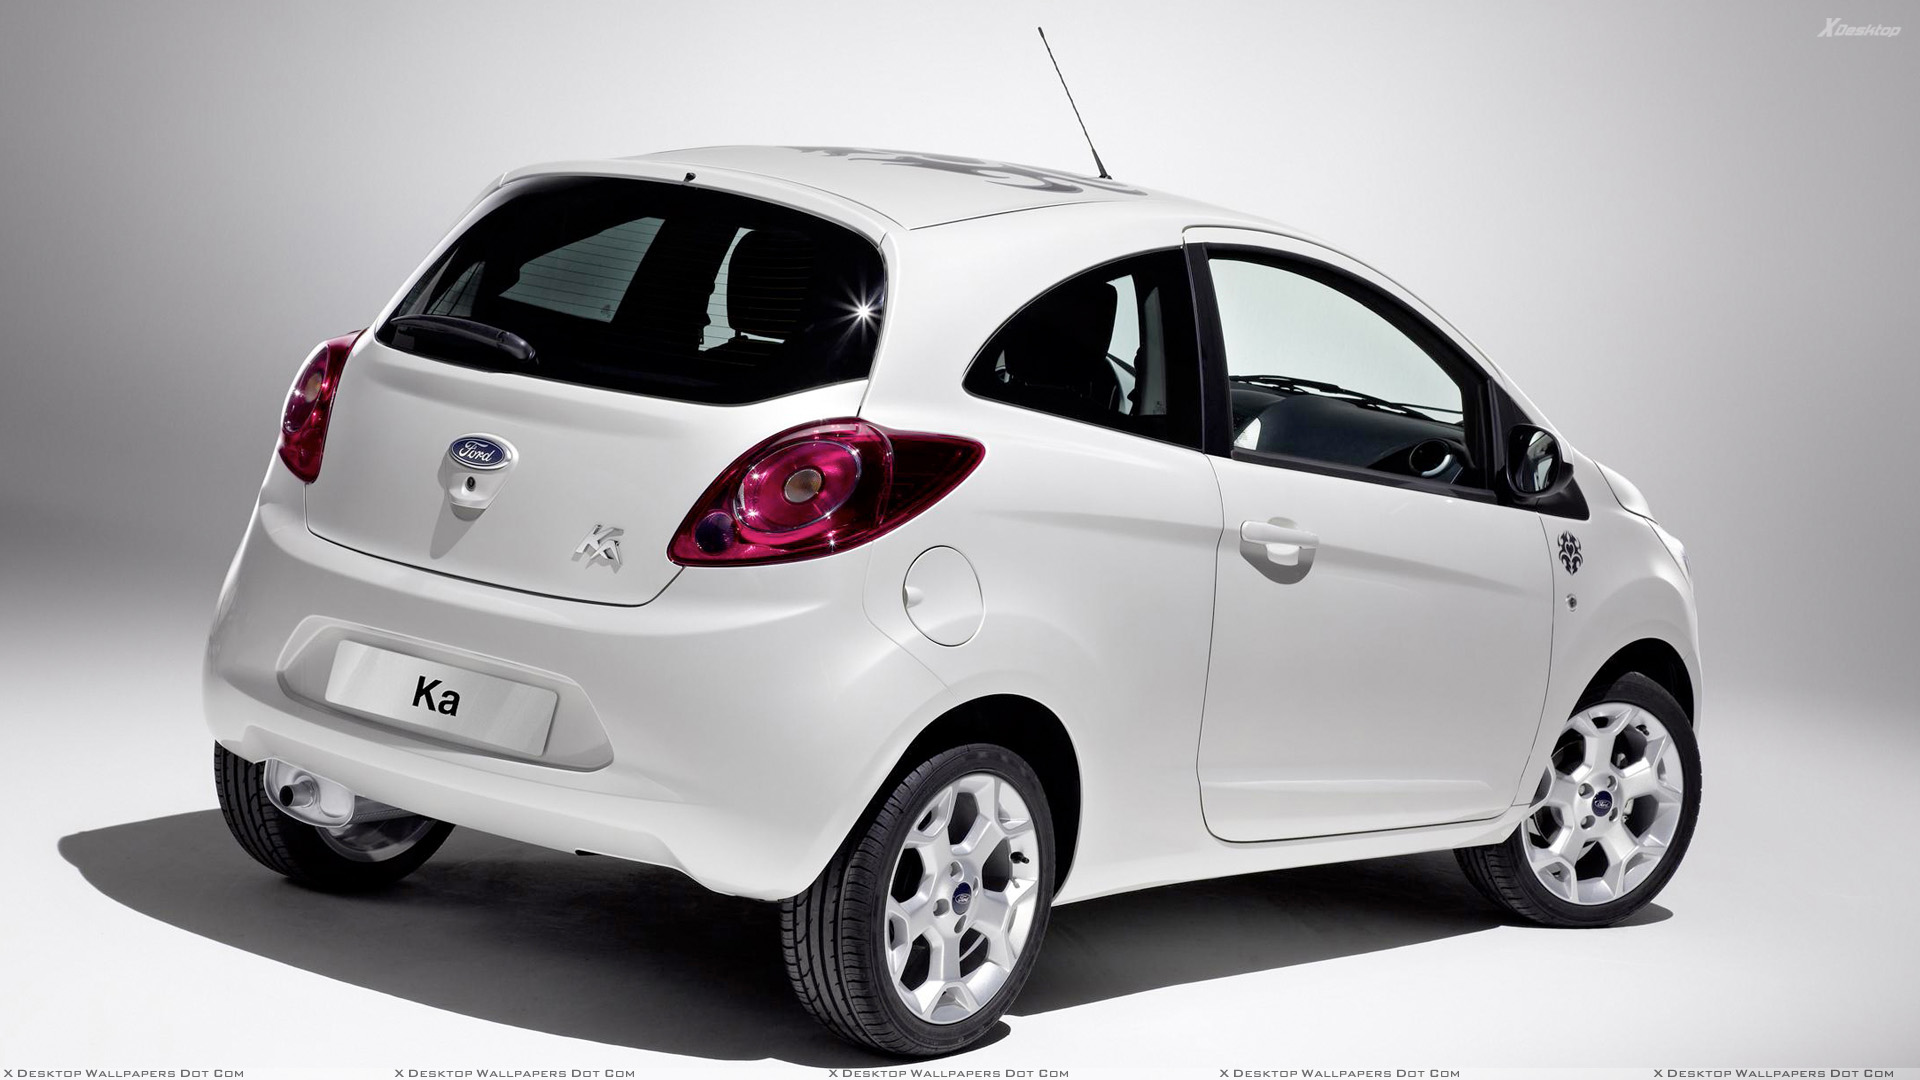 2008 ford ka tattoo side back pose in white n white background wallpaper. Black Bedroom Furniture Sets. Home Design Ideas